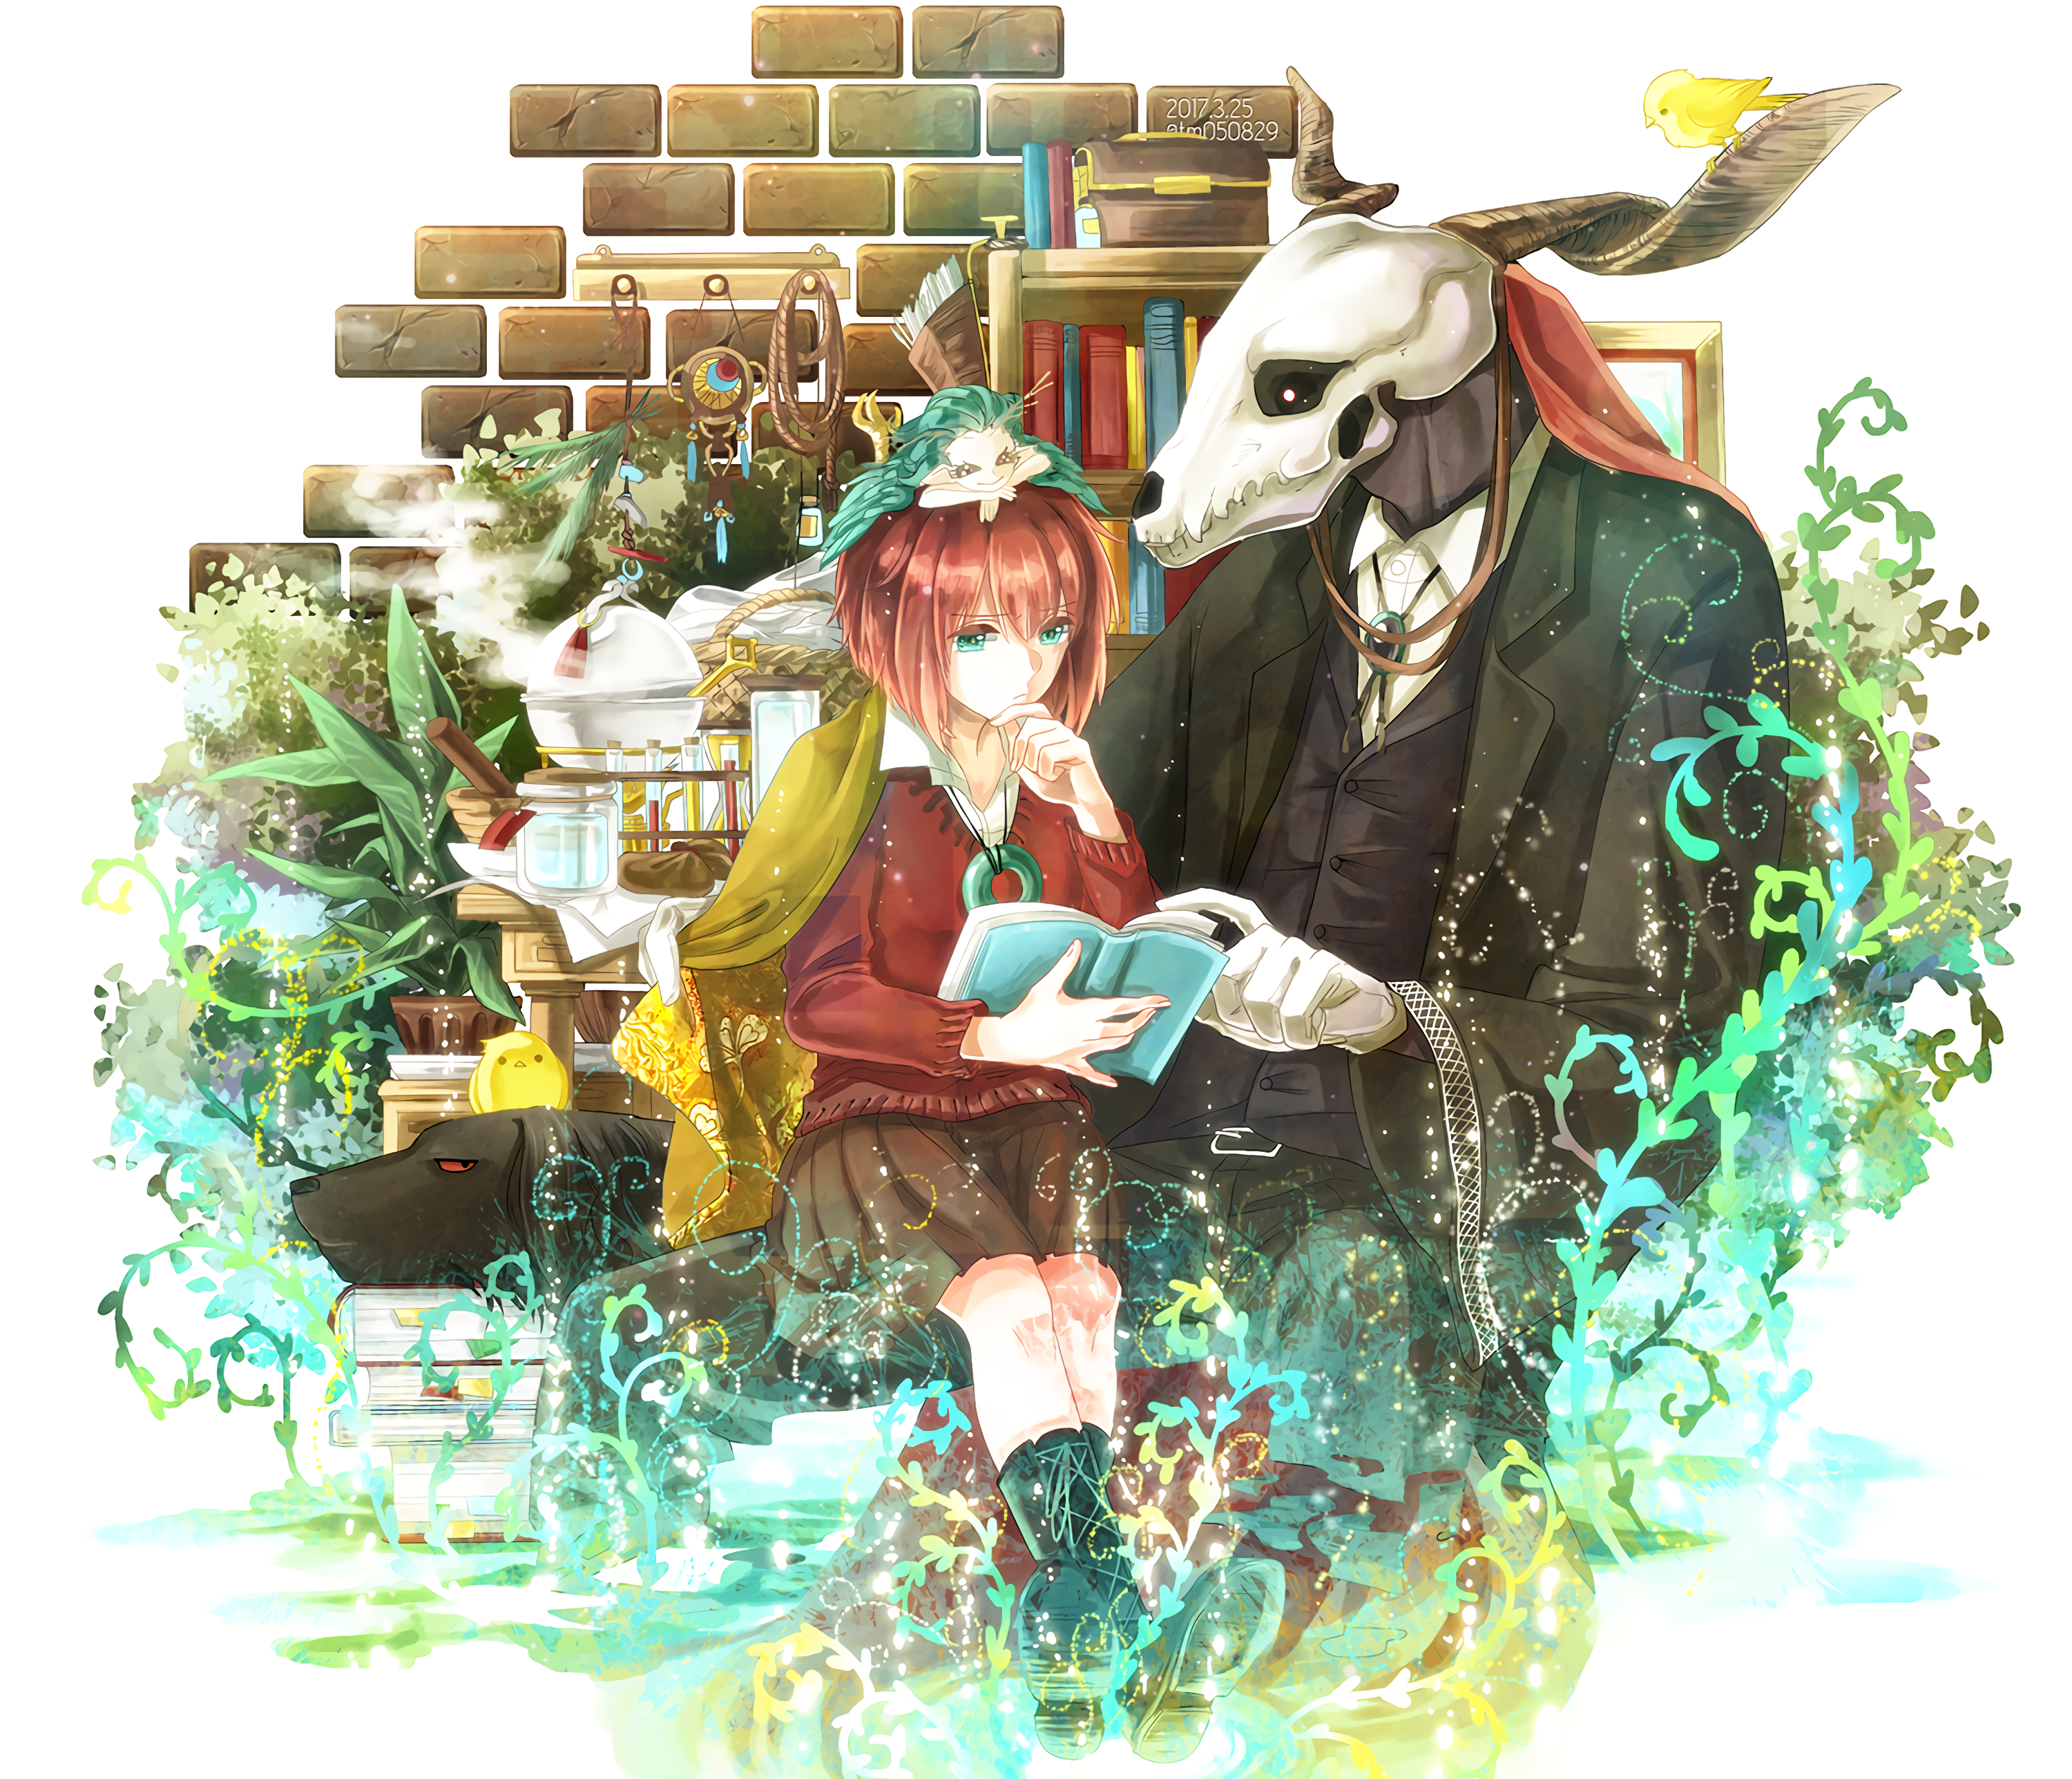 50 The Ancient Magus Bride Hd Wallpapers Background Images